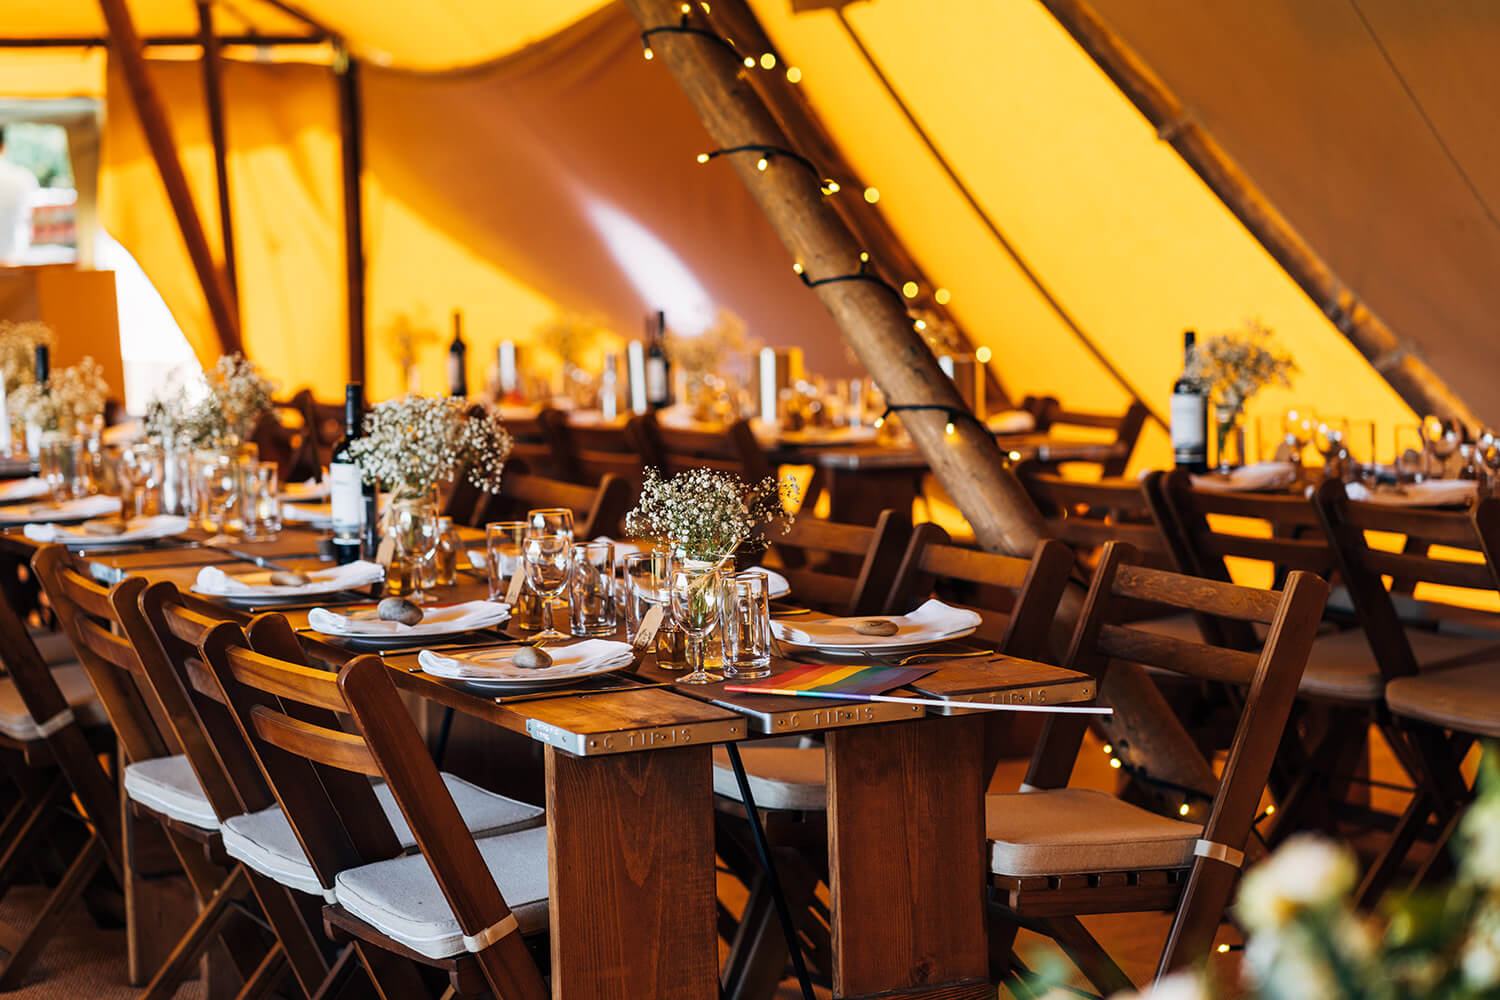 Rustic tables and folding wooden chairs in our Tipis